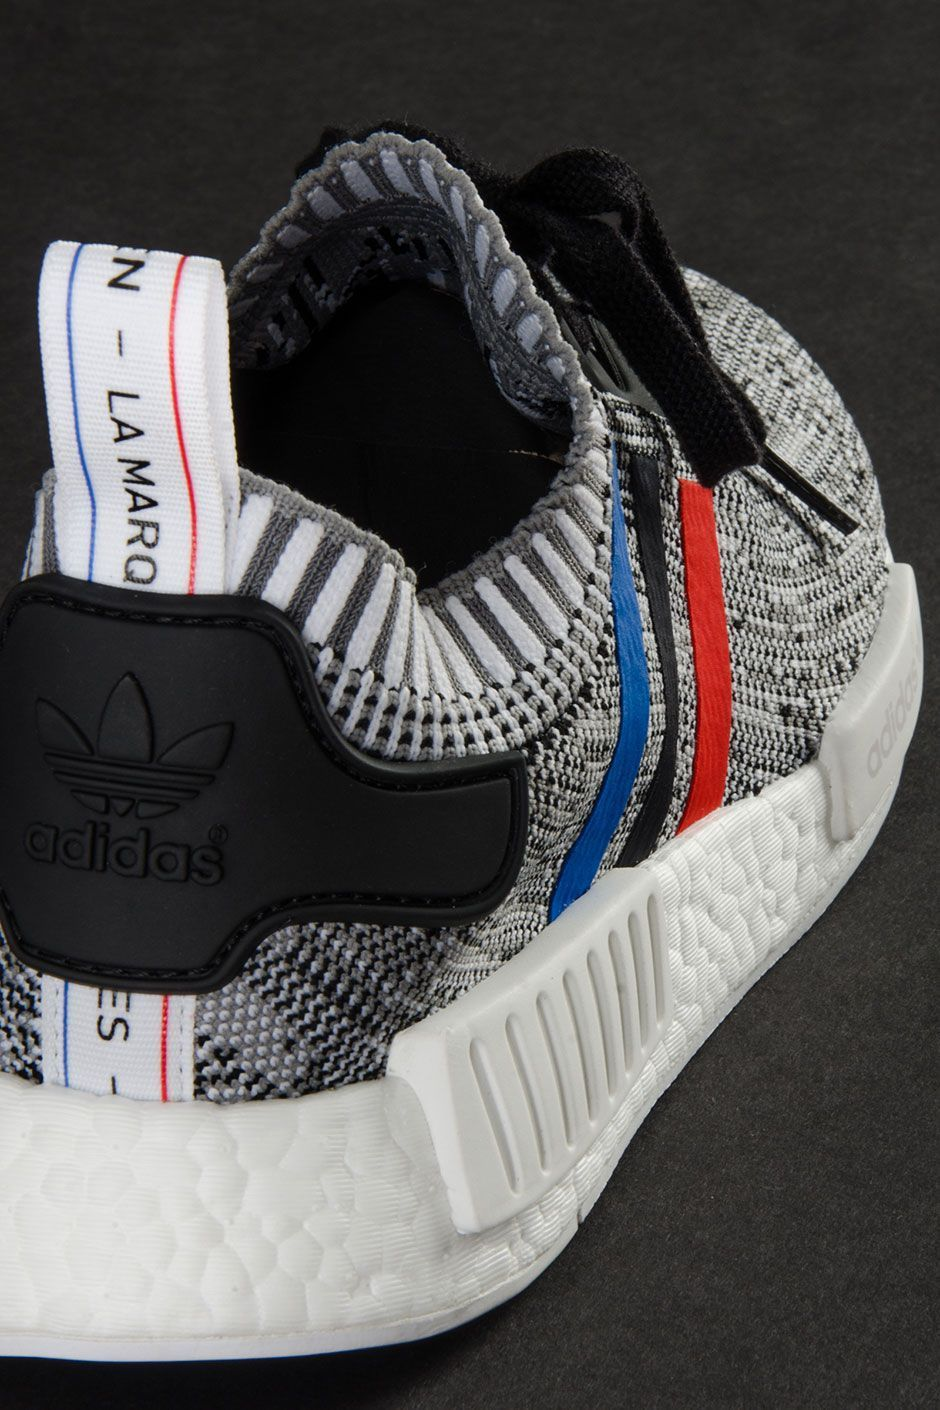 "1151855e64b96 A Detailed Look At The adidas NMD R1 Primeknit ""Tri-Color"" Pack Page 2 of 4  - SneakerNews.com"